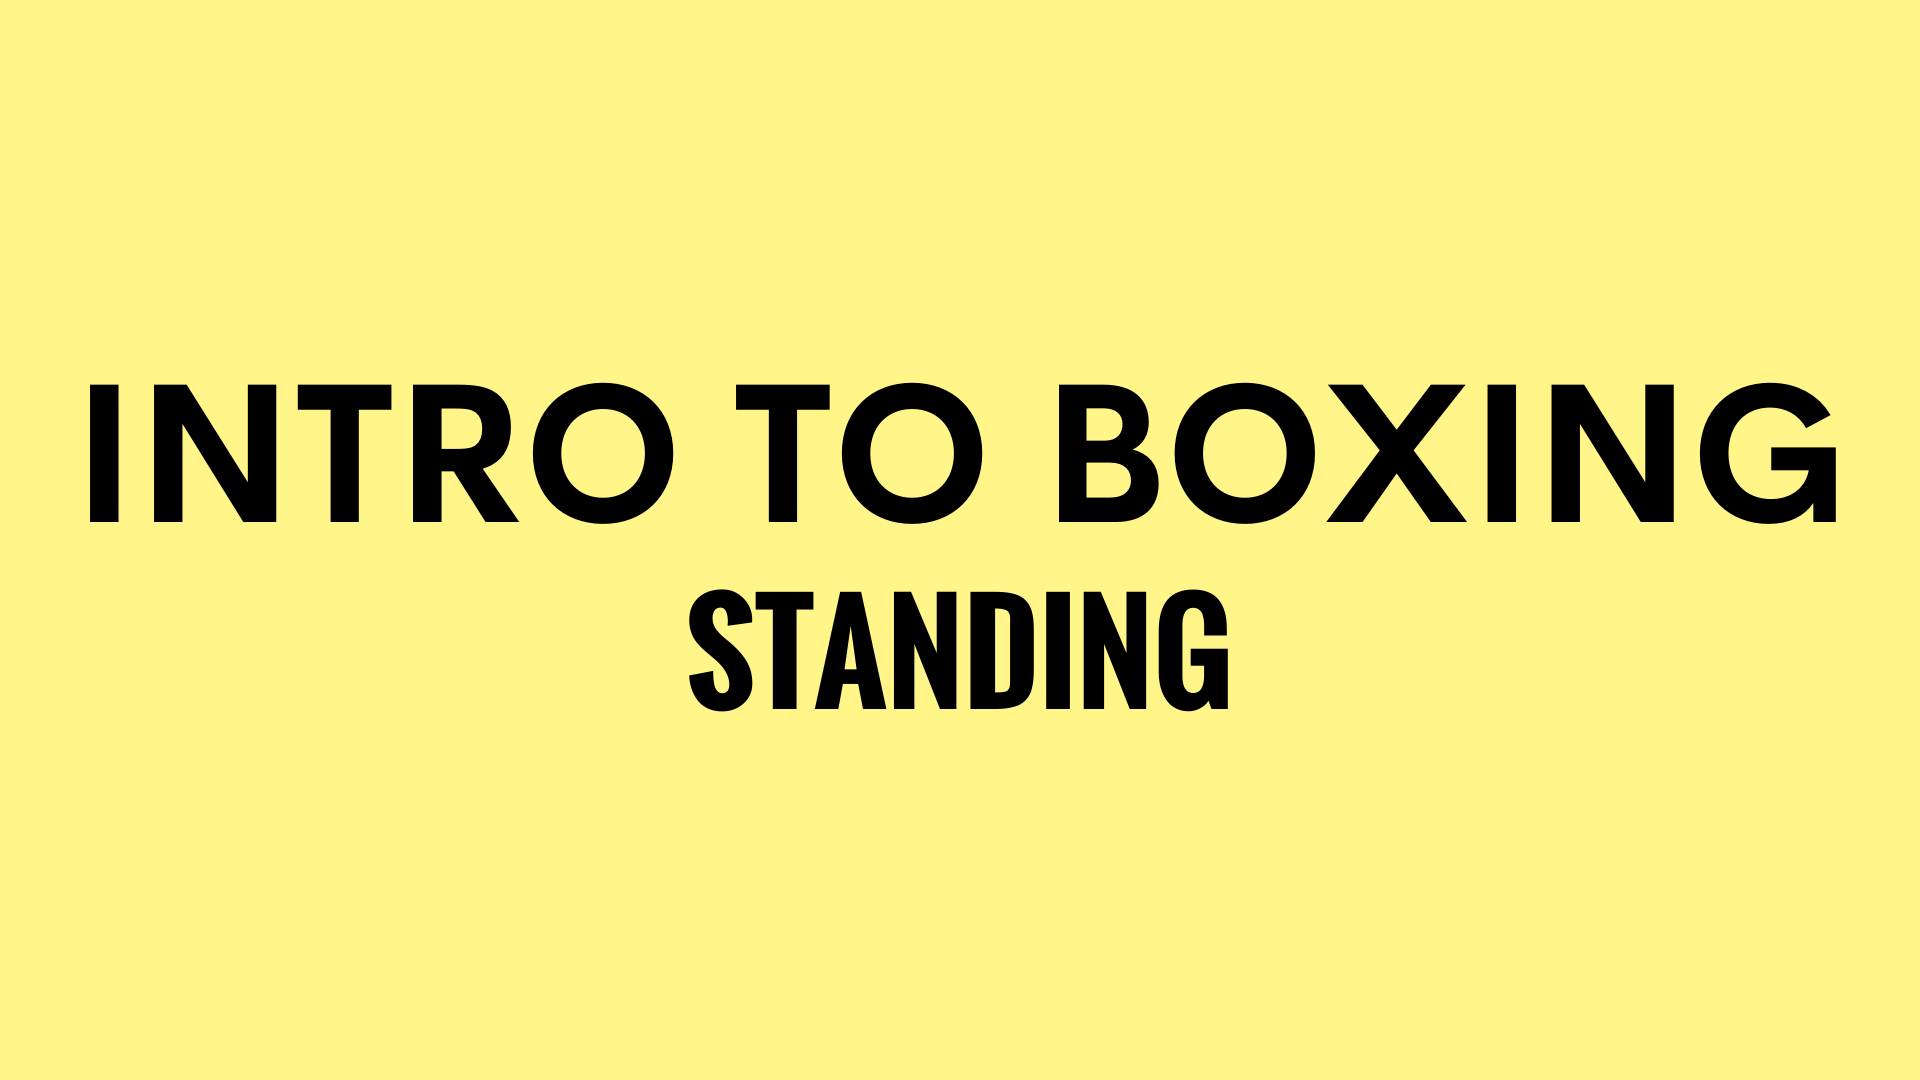 INTRO TO BOXING STANDING